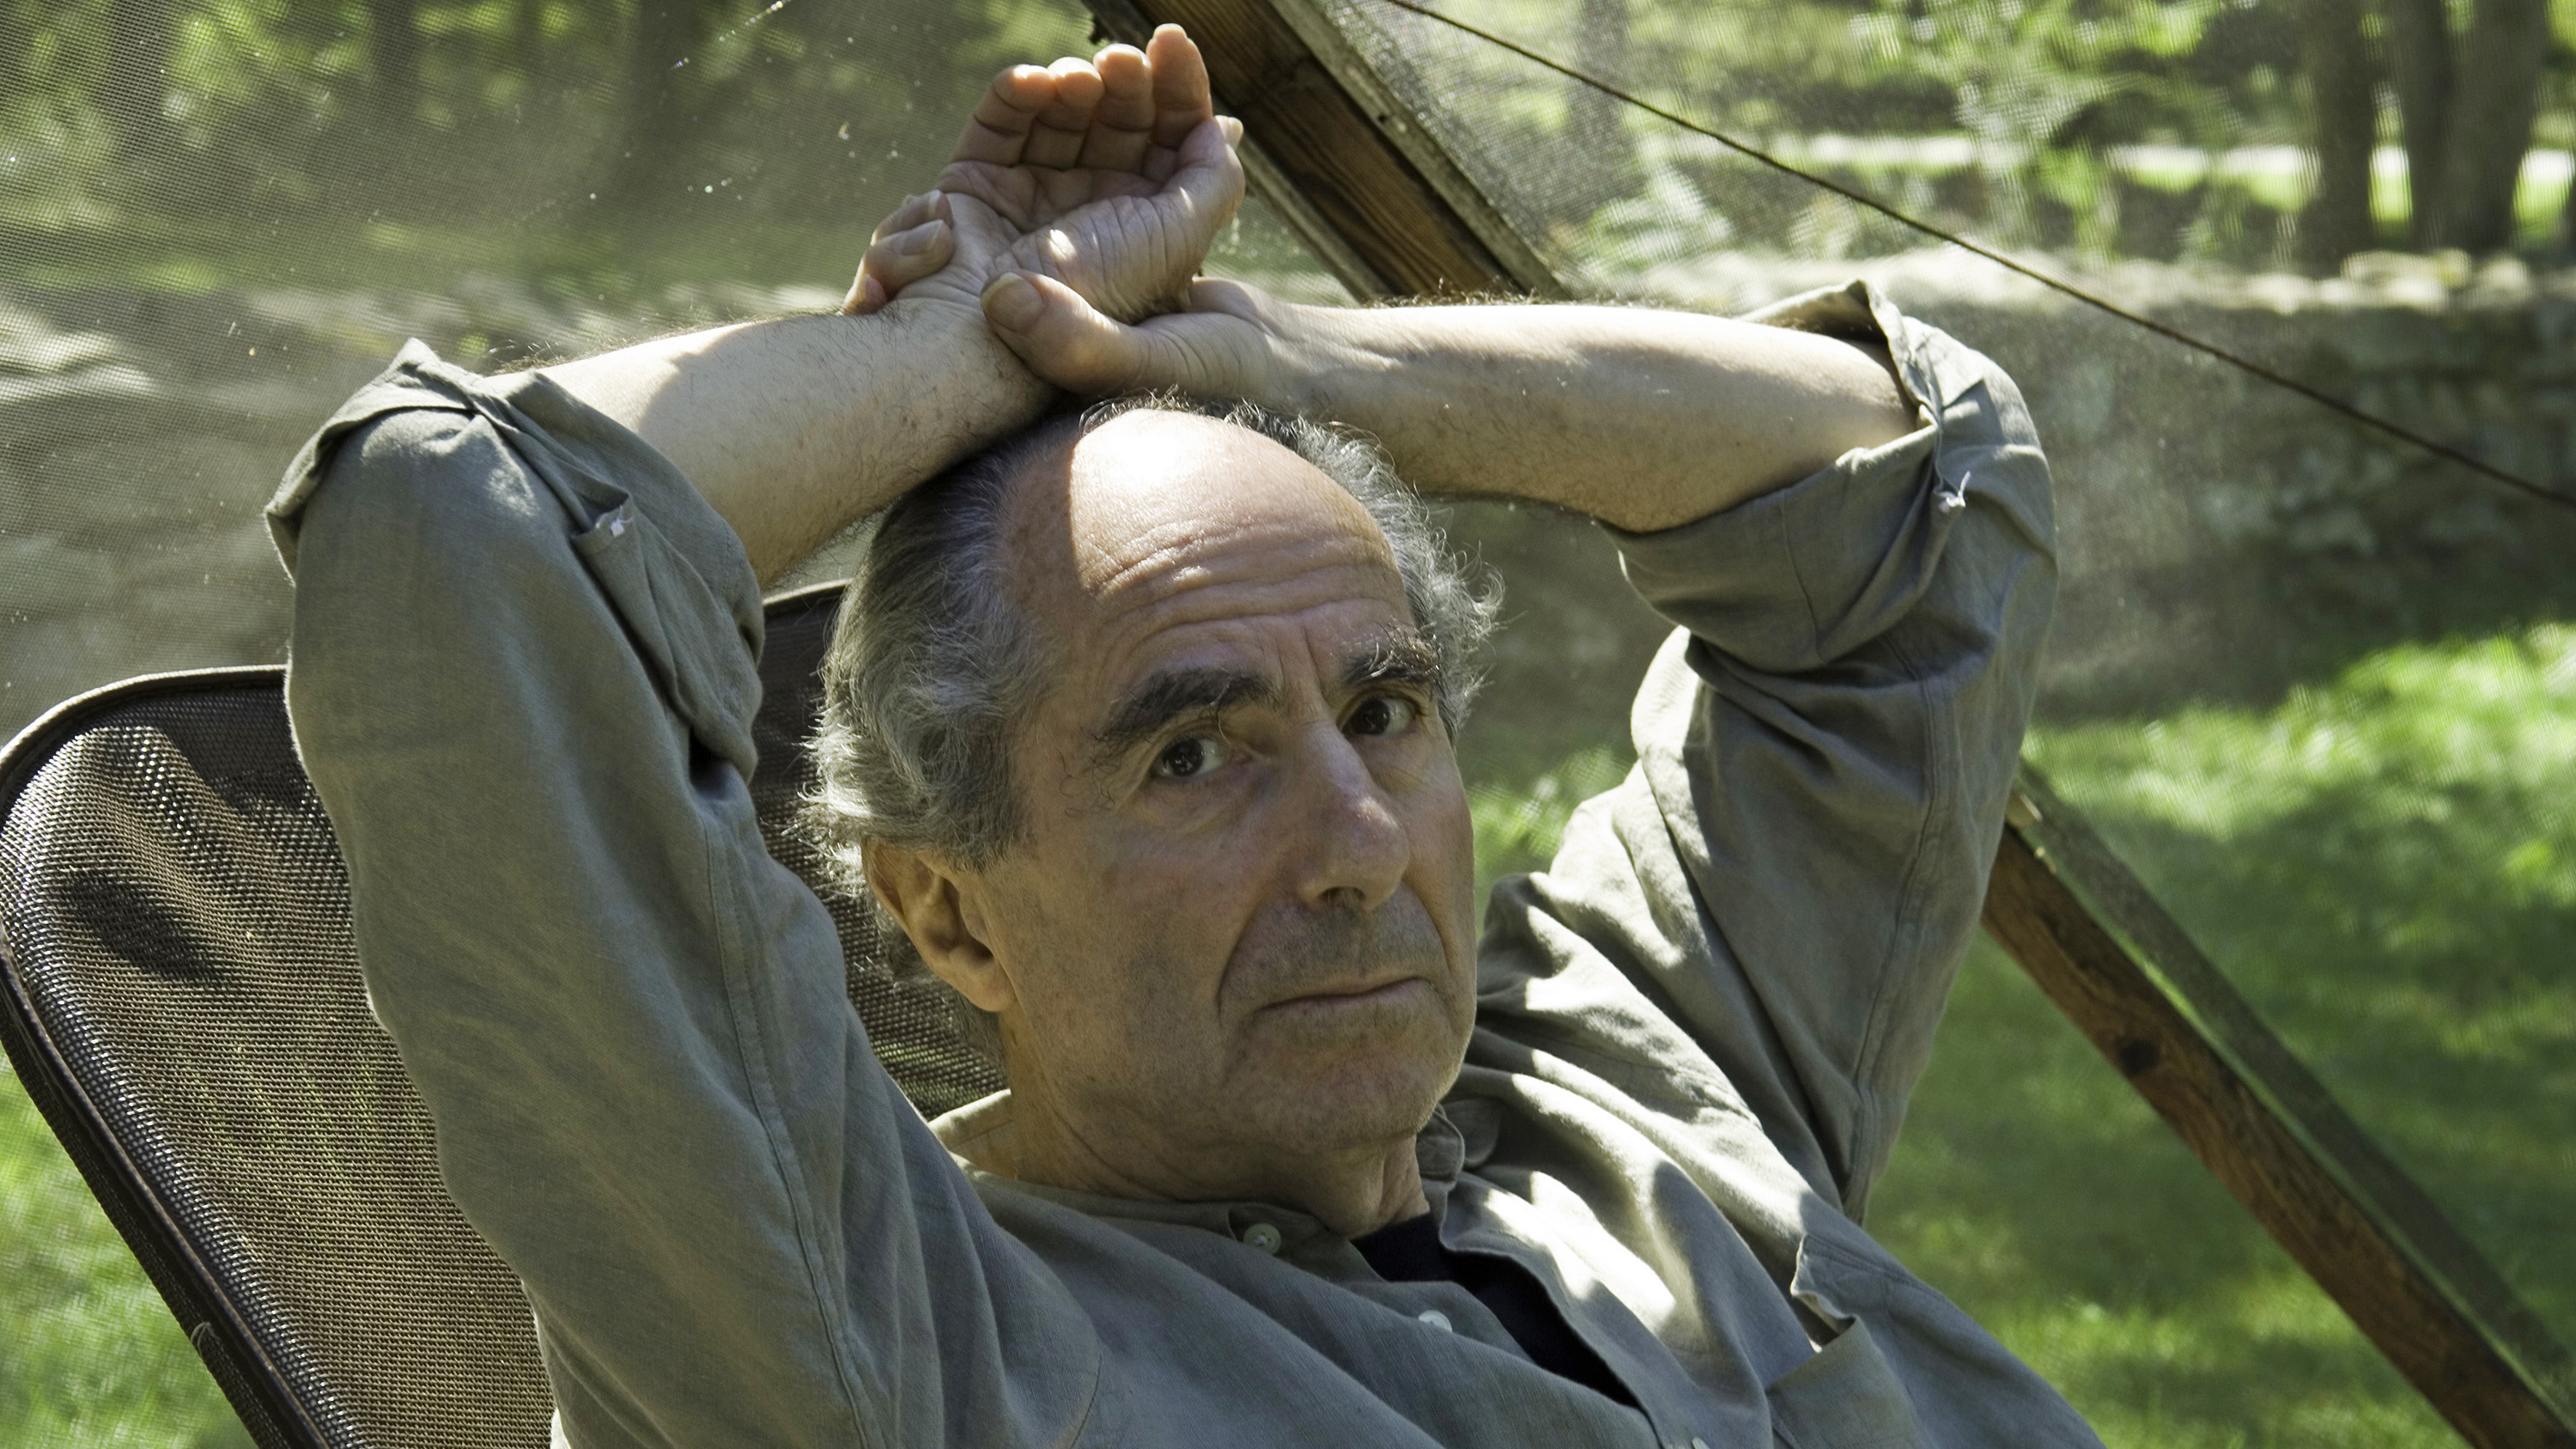 Pulitzer-winning author Philip Roth dies at 85: media reports